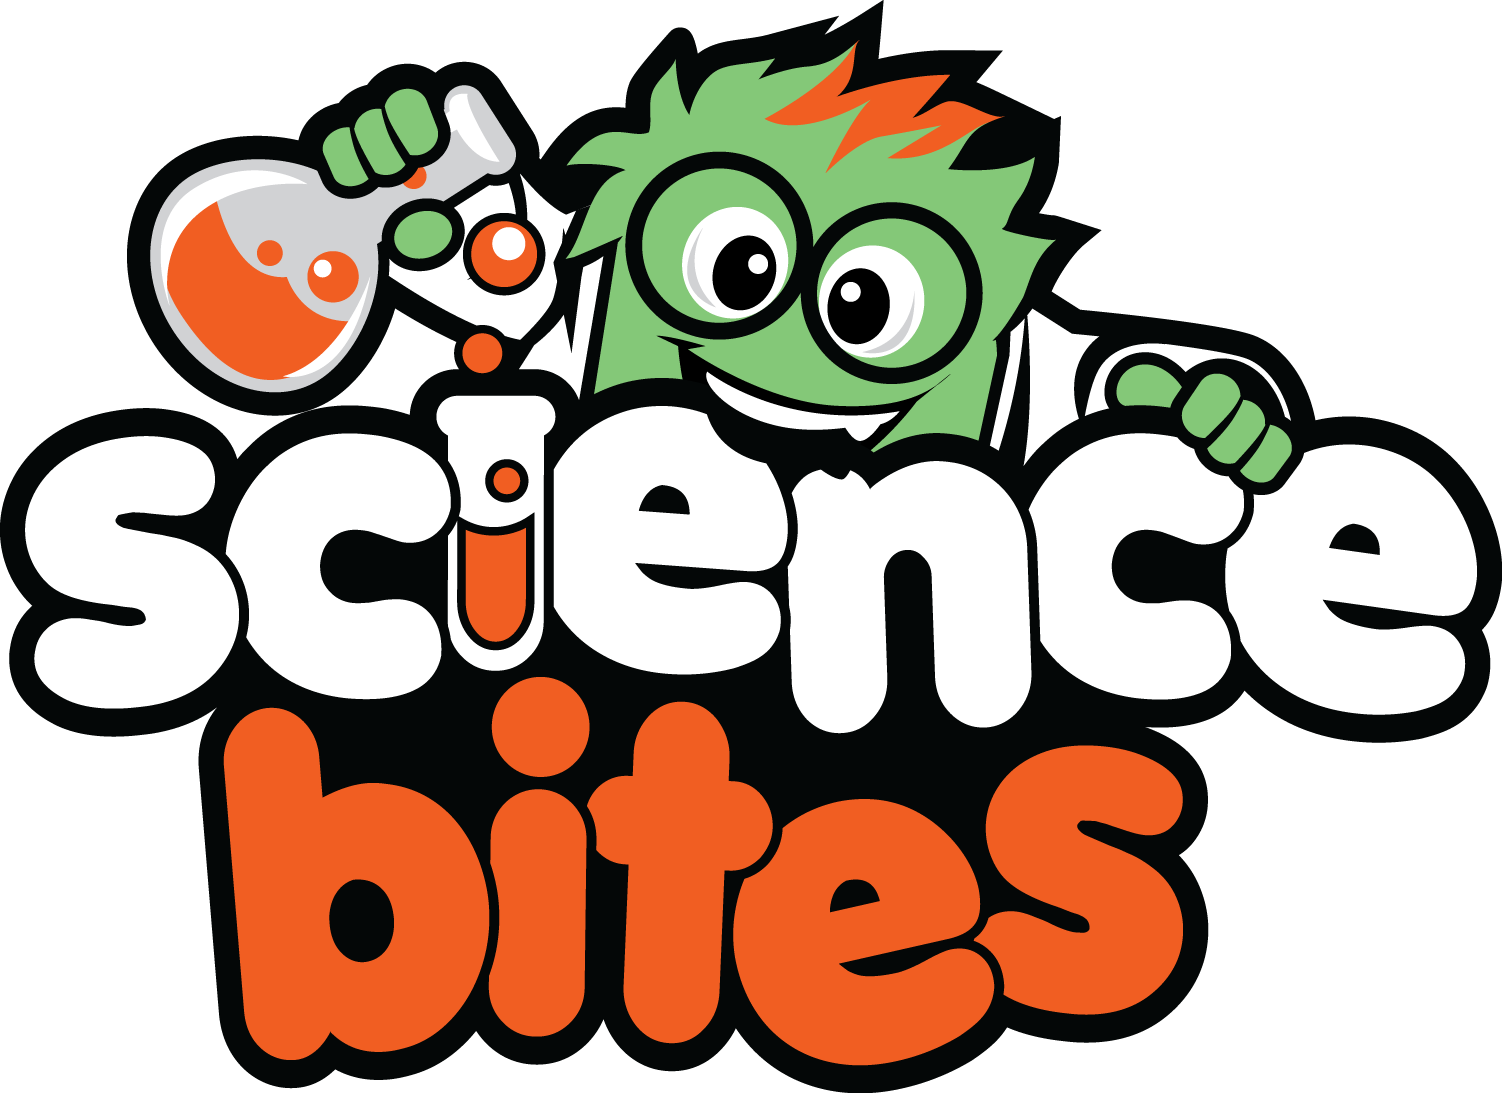 Earth pages sciencebites cartoons. Coloring clipart science